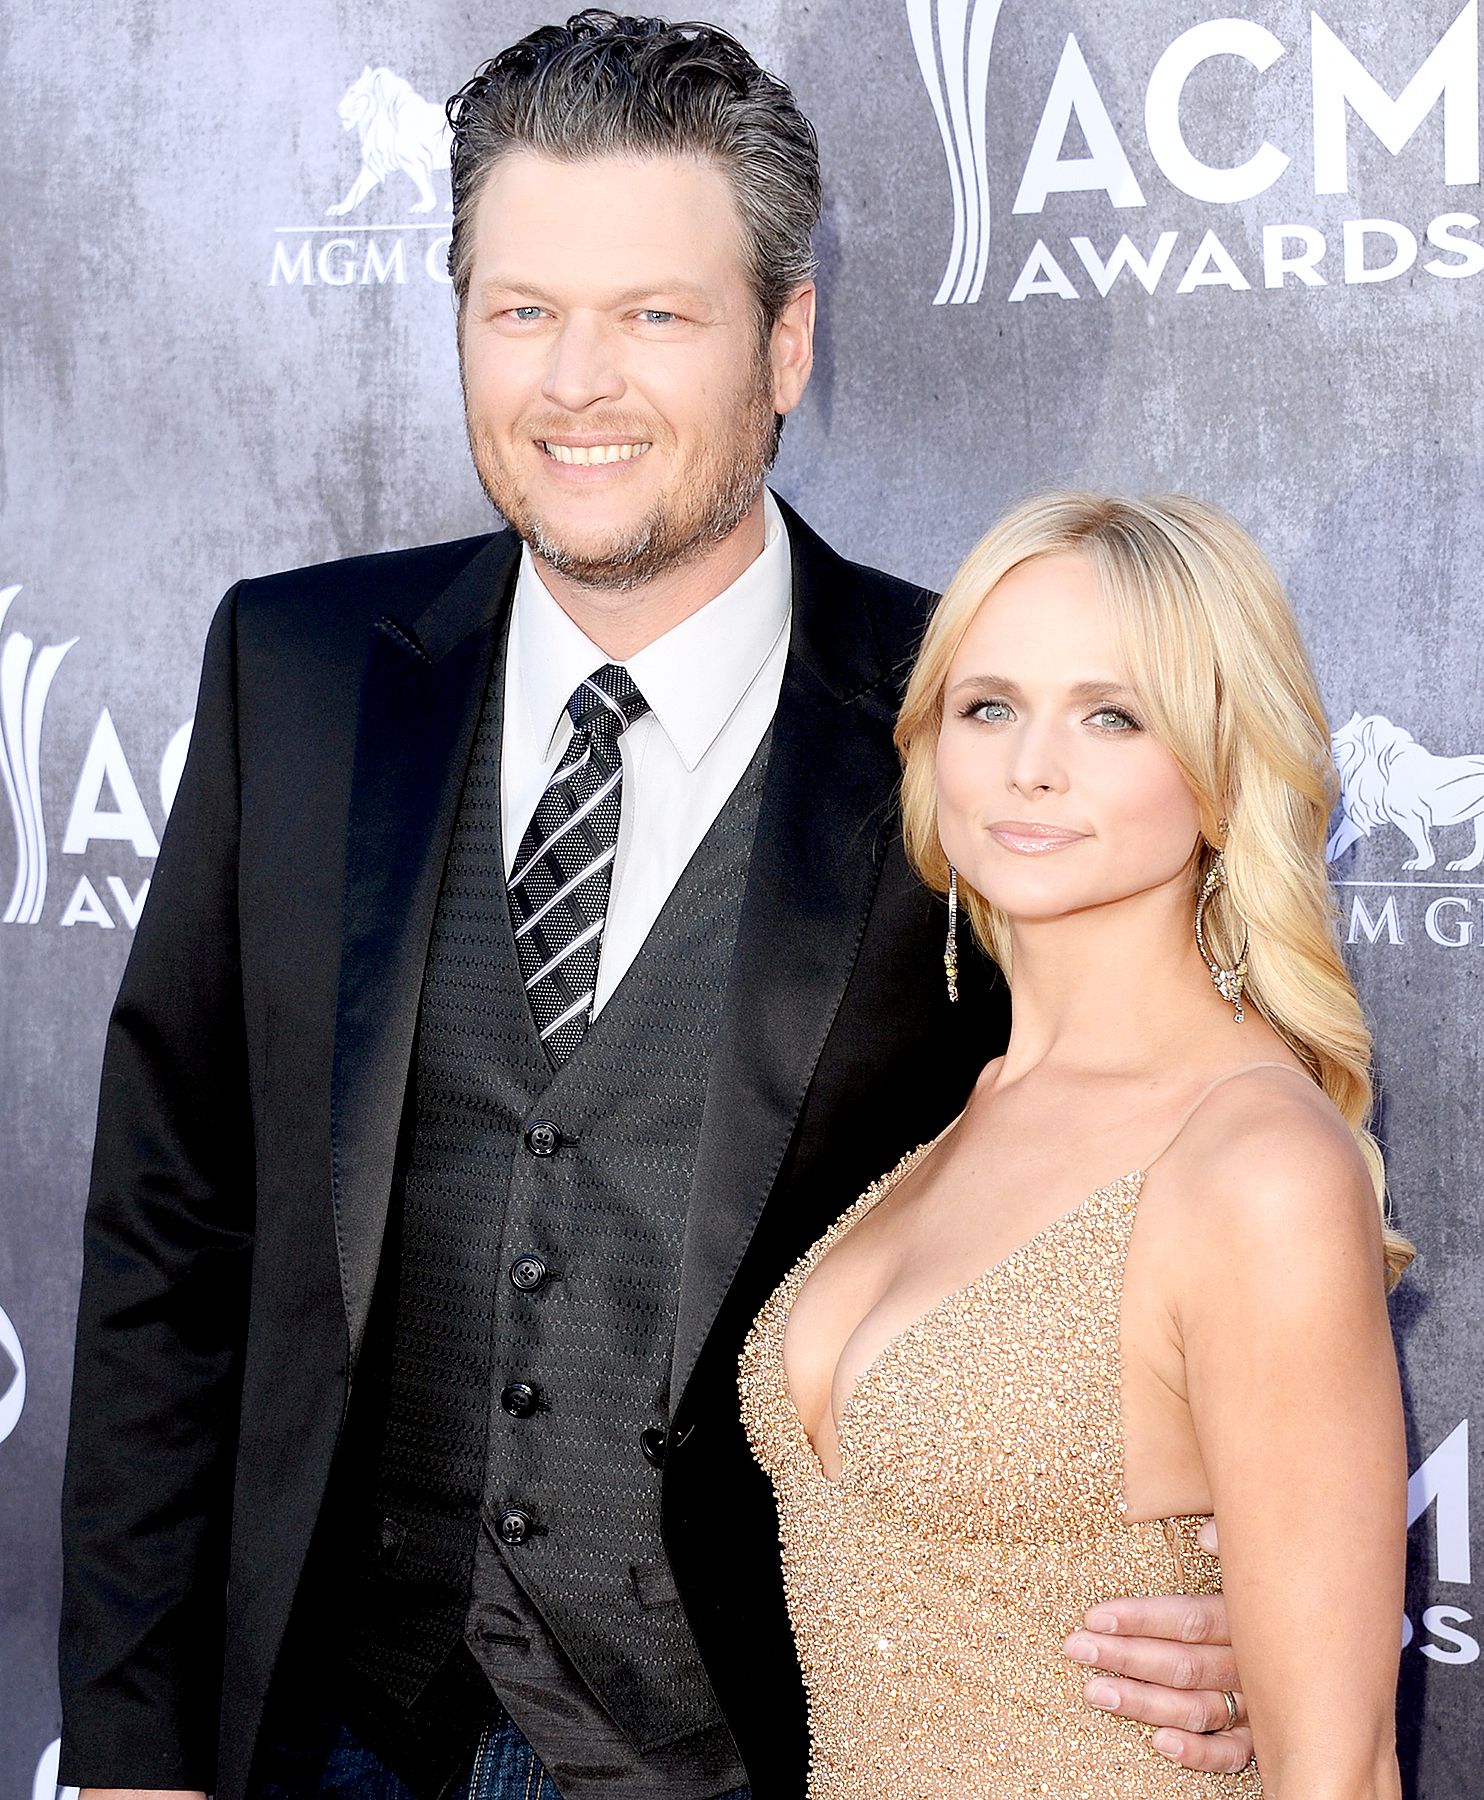 Blake Shelton and Miranda Lambert attend the 49th Annual Academy Of Country Music Awards at the MGM Grand Garden Arena on April 6, 2014 in Las Vegas.